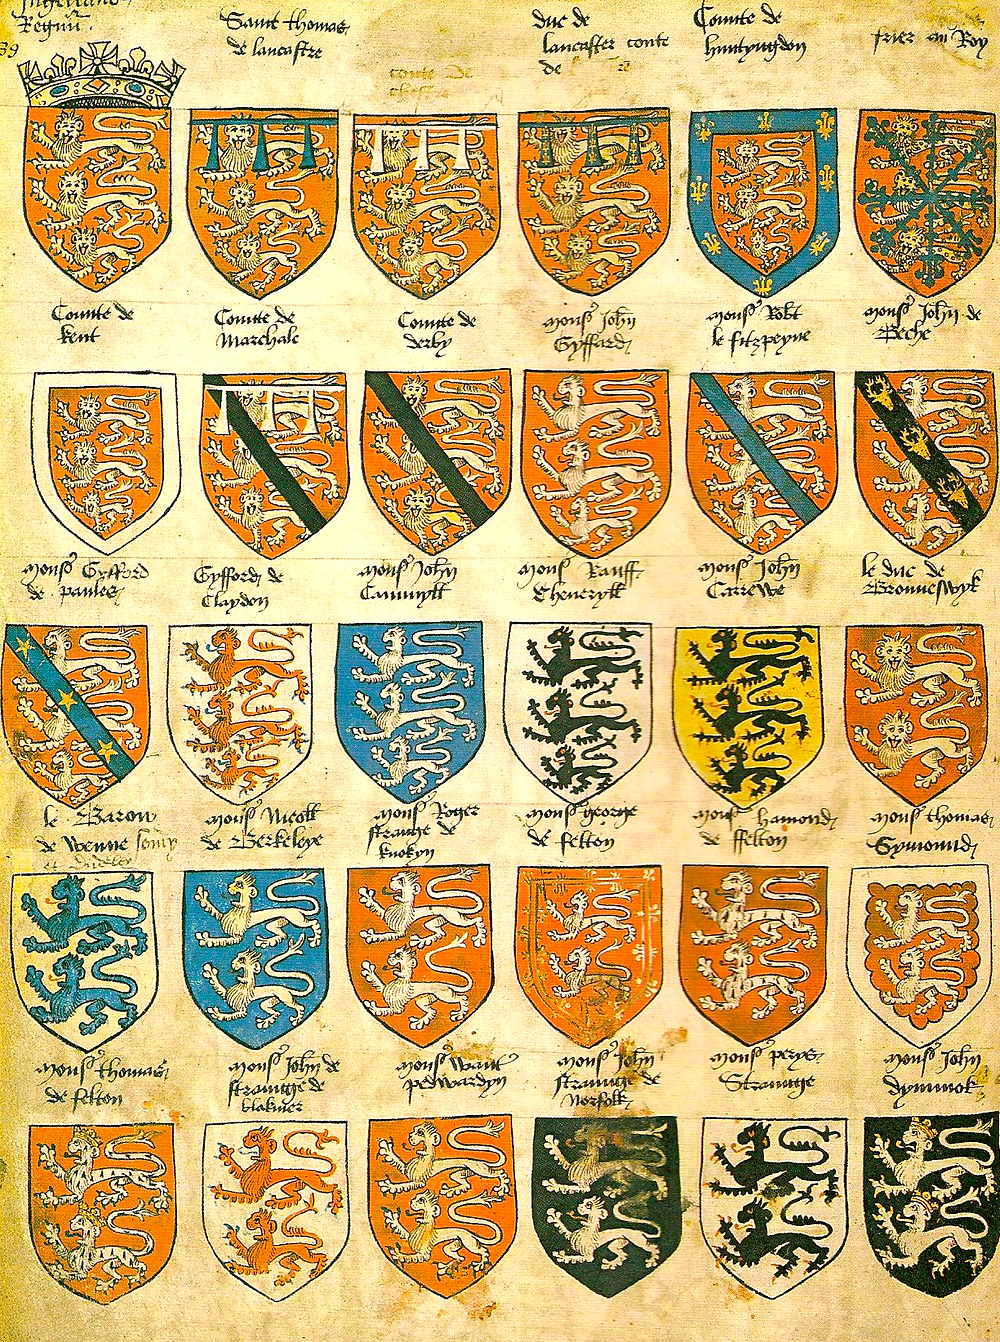 By Unknown author (The Oxford Guide to Heraldry) [Public domain], via Wikimedia Commons